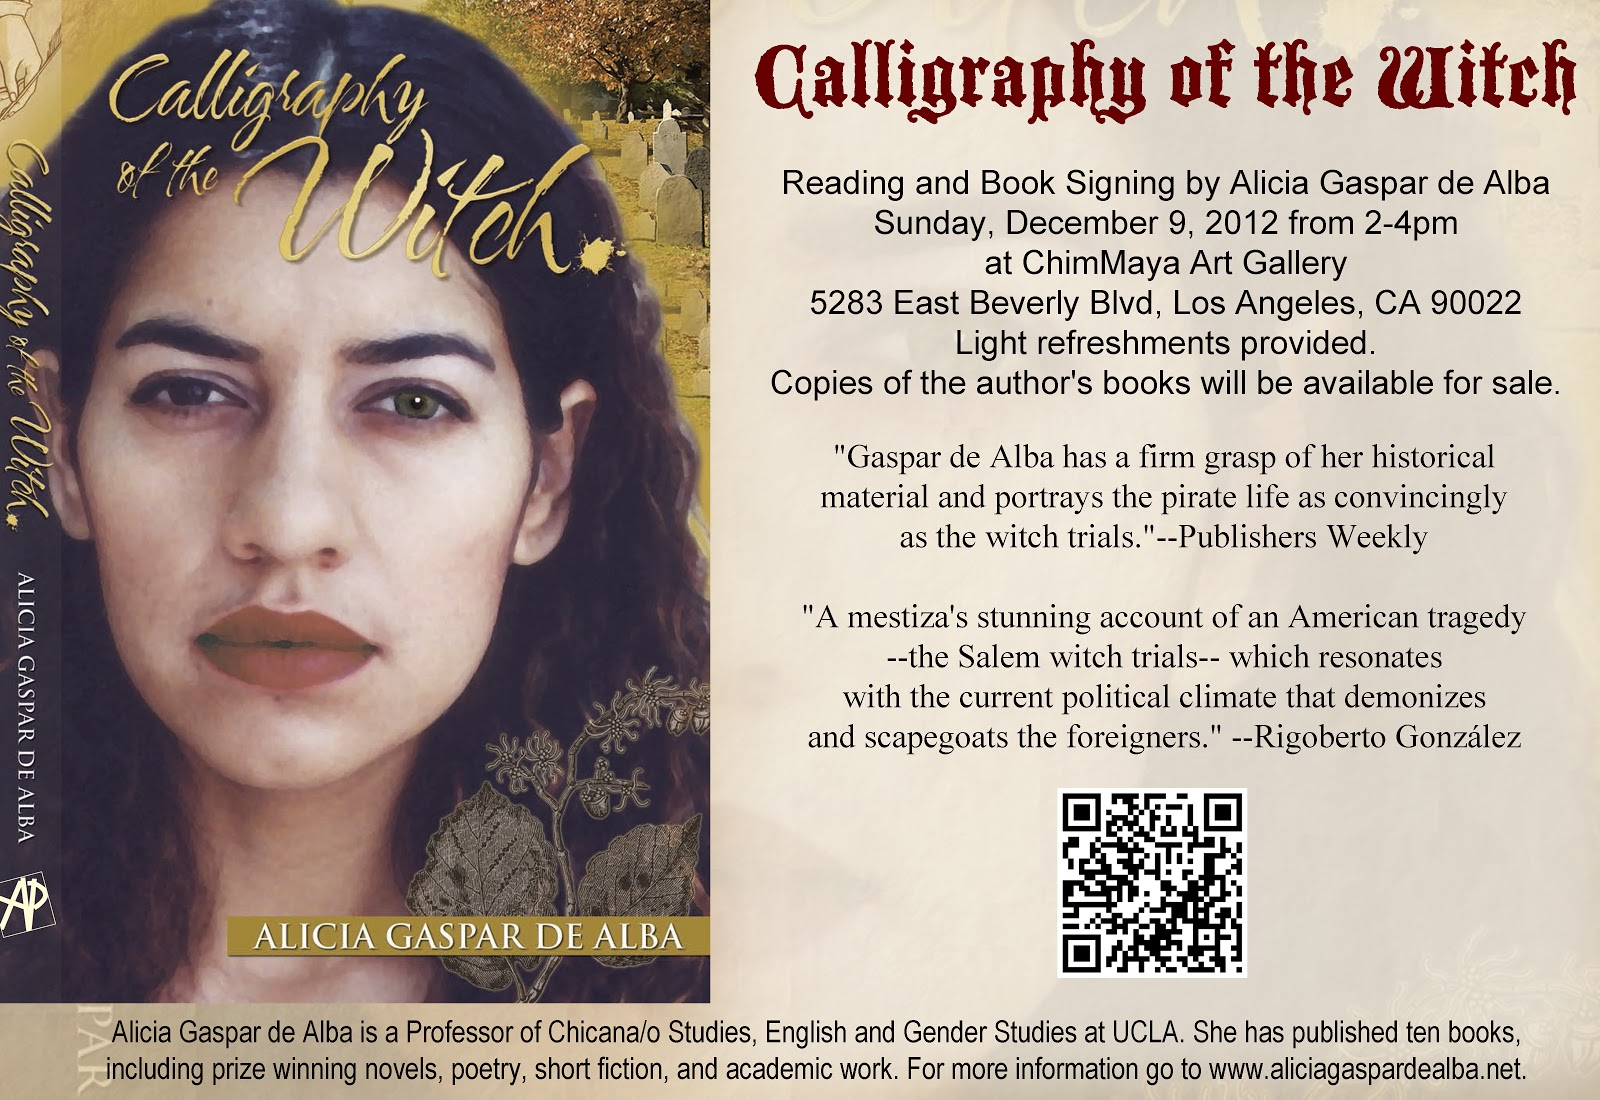 To Celebrate The Paperback Release Of Calligraphy Of The Witch I Will Be  Doing A Reading & Book Signing At Chimmaya Art Gallery (5283 E Beverly  Blvd,